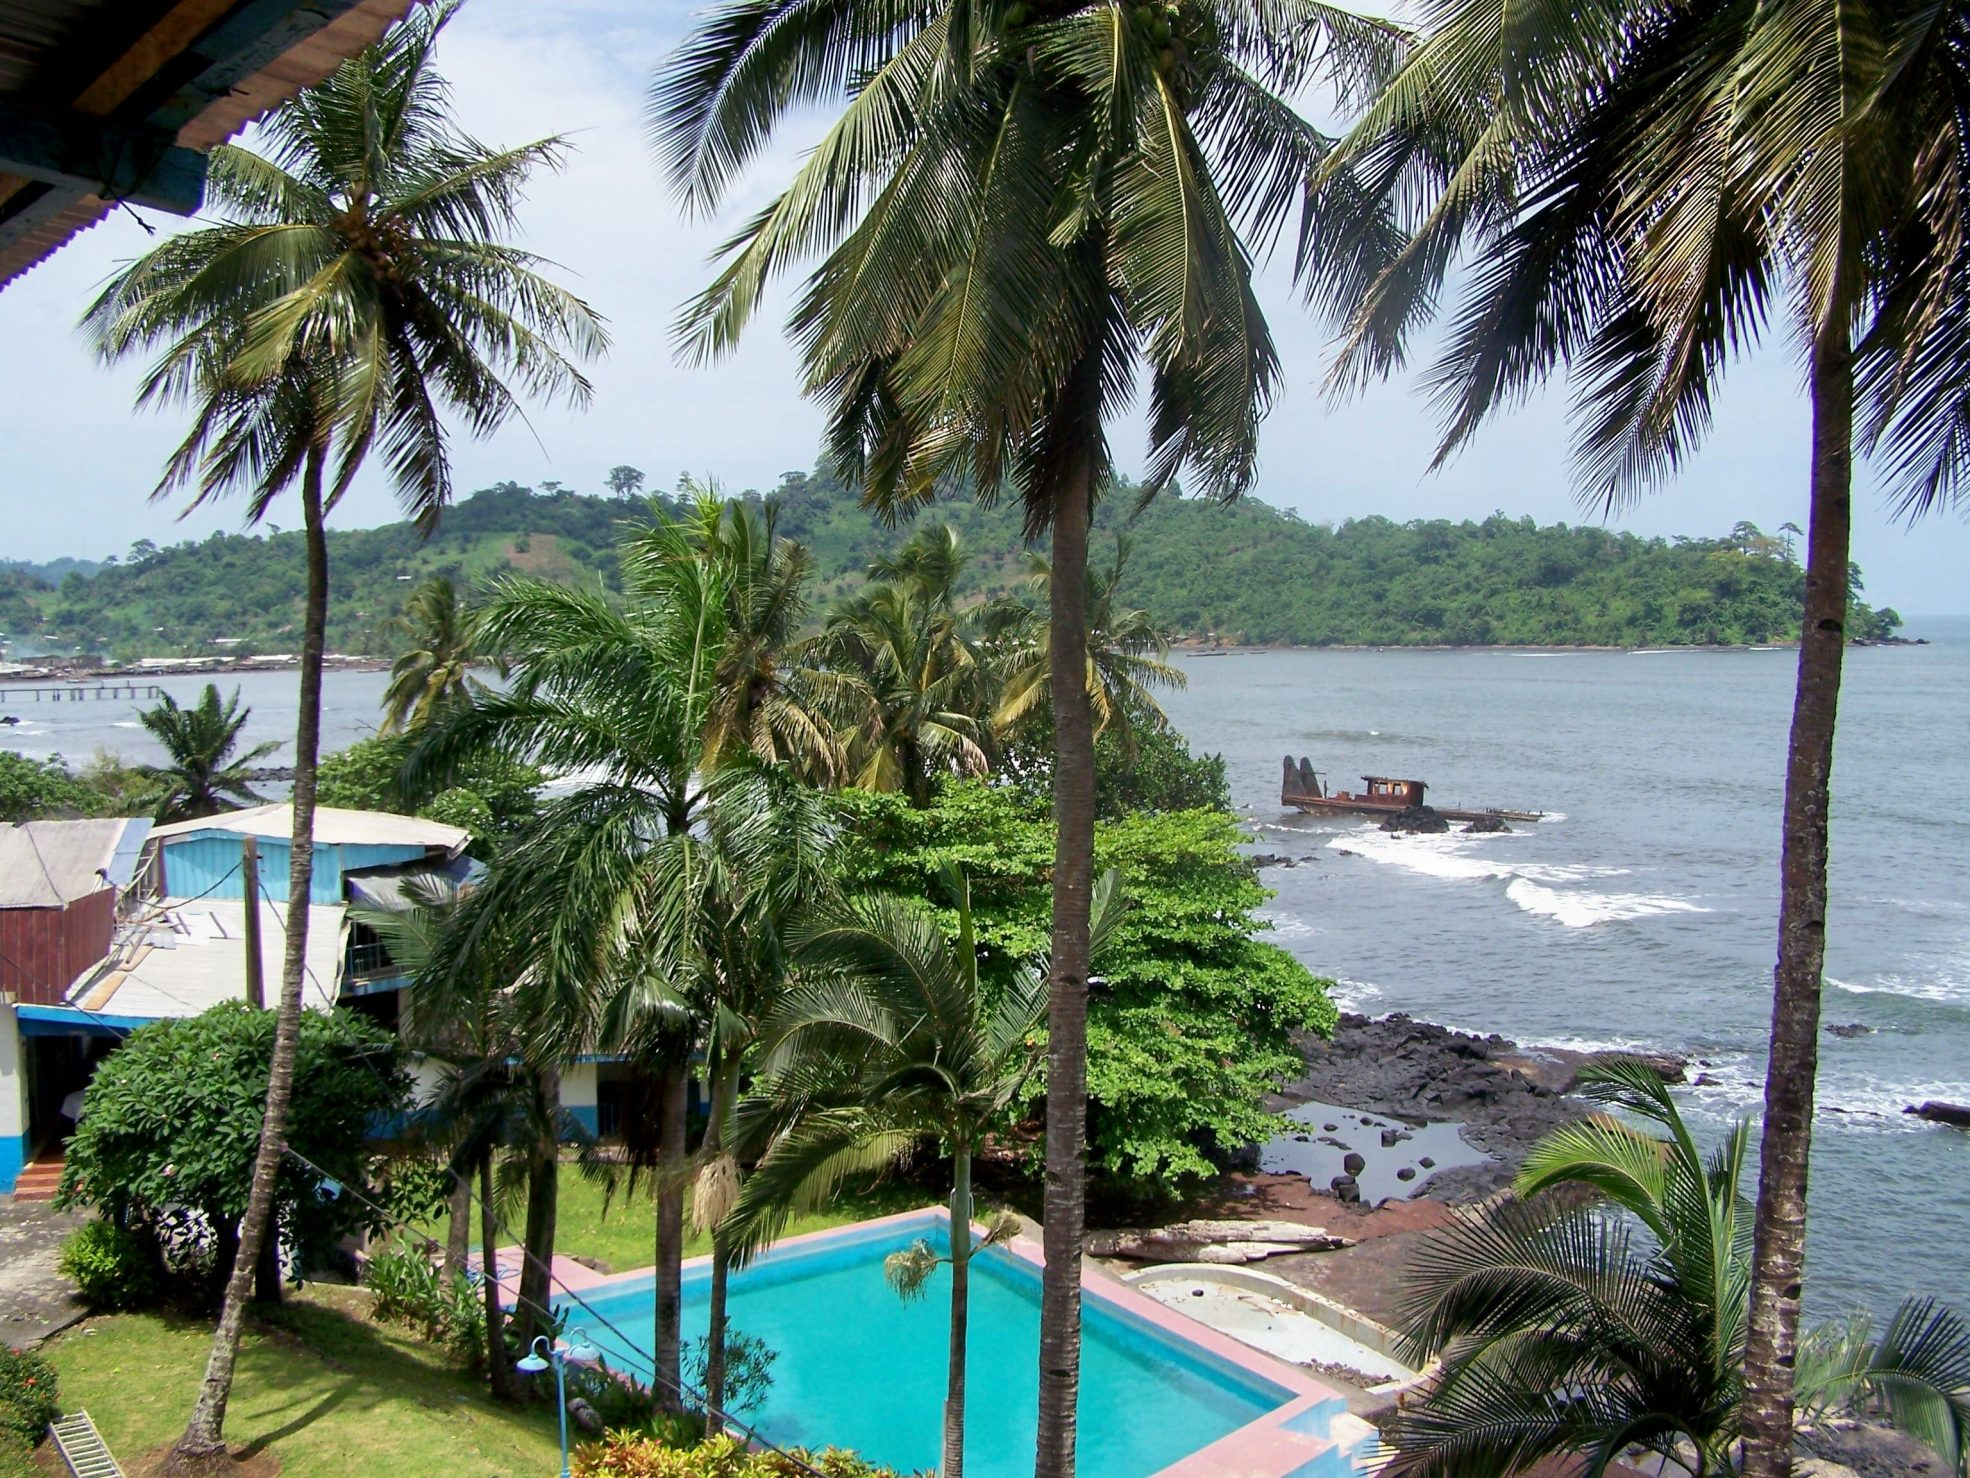 15 Beautiful Places To Visit When In Liberia